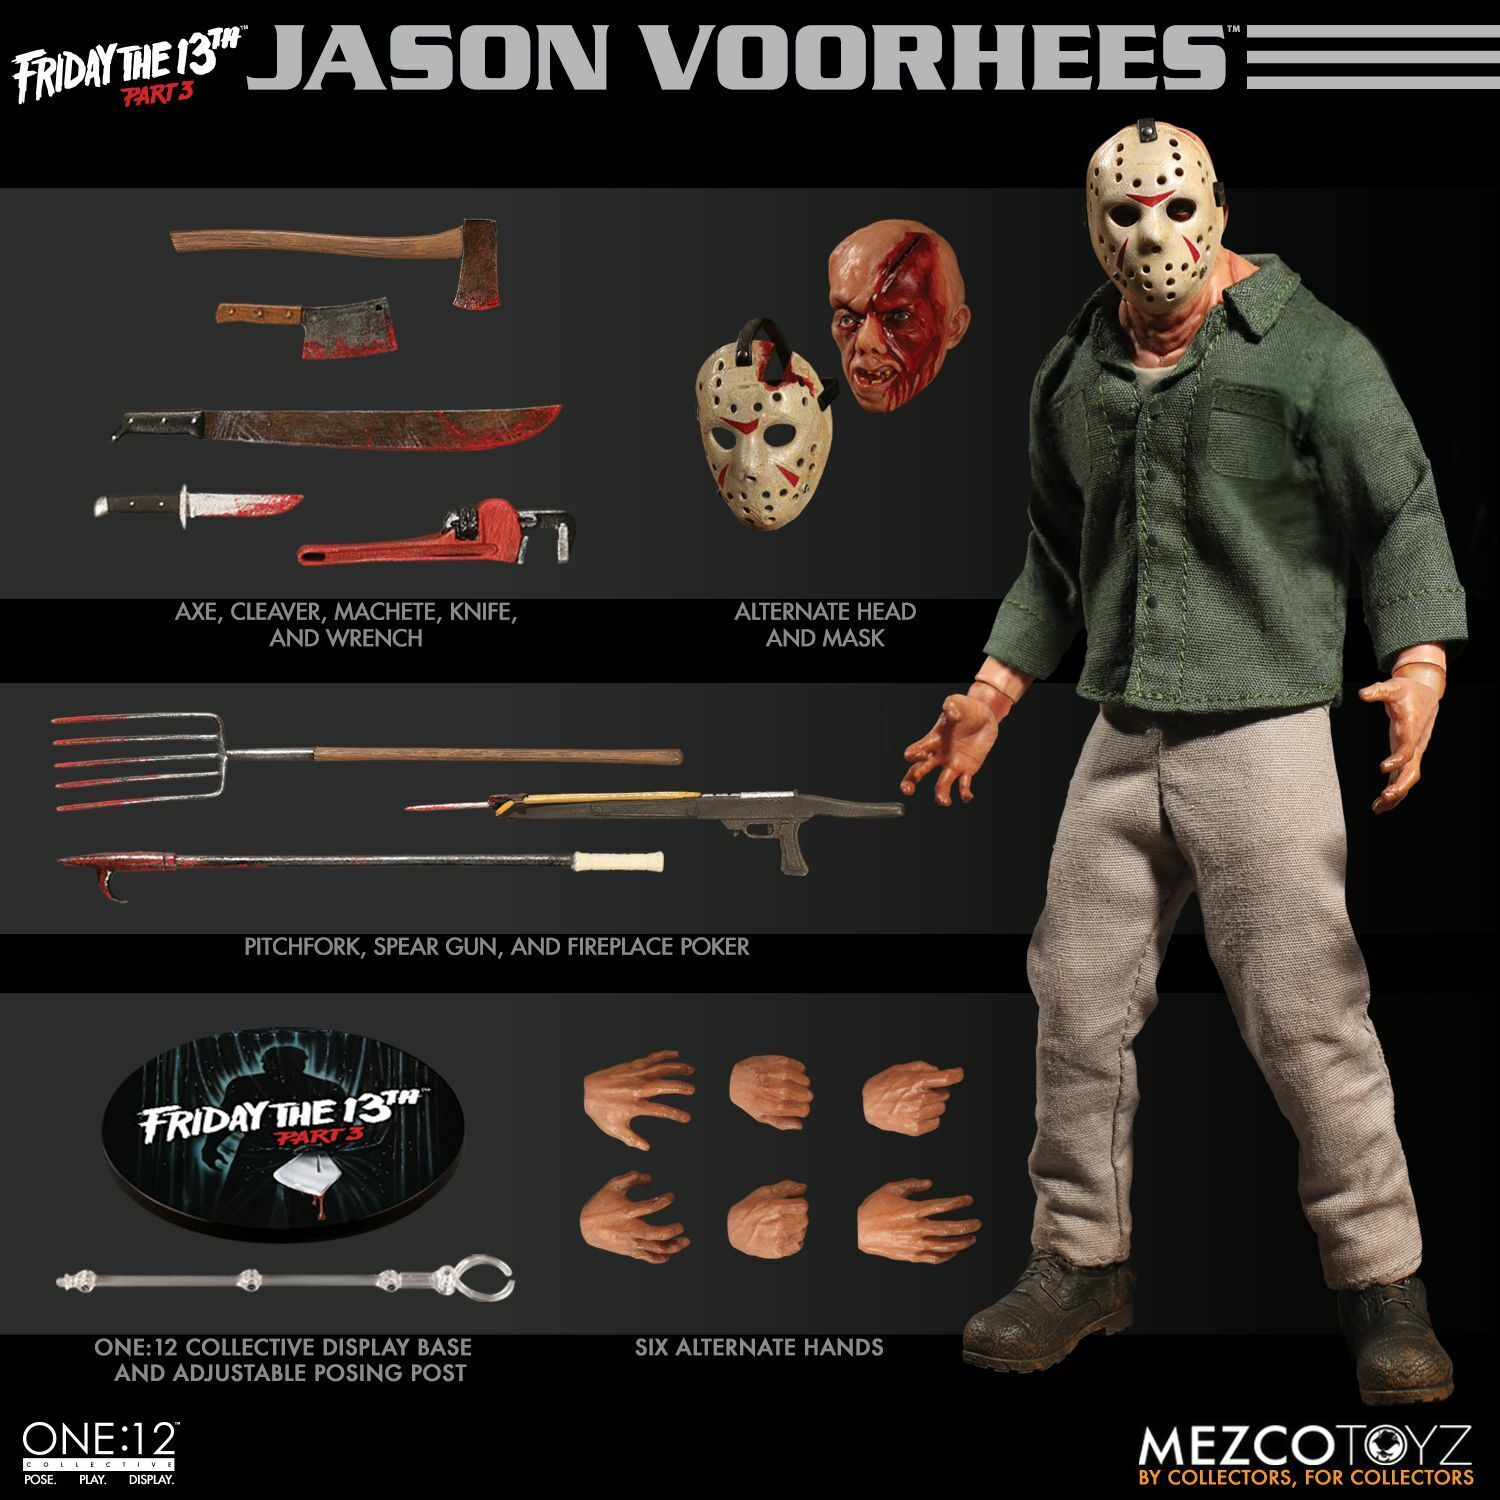 One 12 collettiva JASON VORHEES 6   azione cifra Friday The 13th PART 3 (Mezco)  grandi risparmi